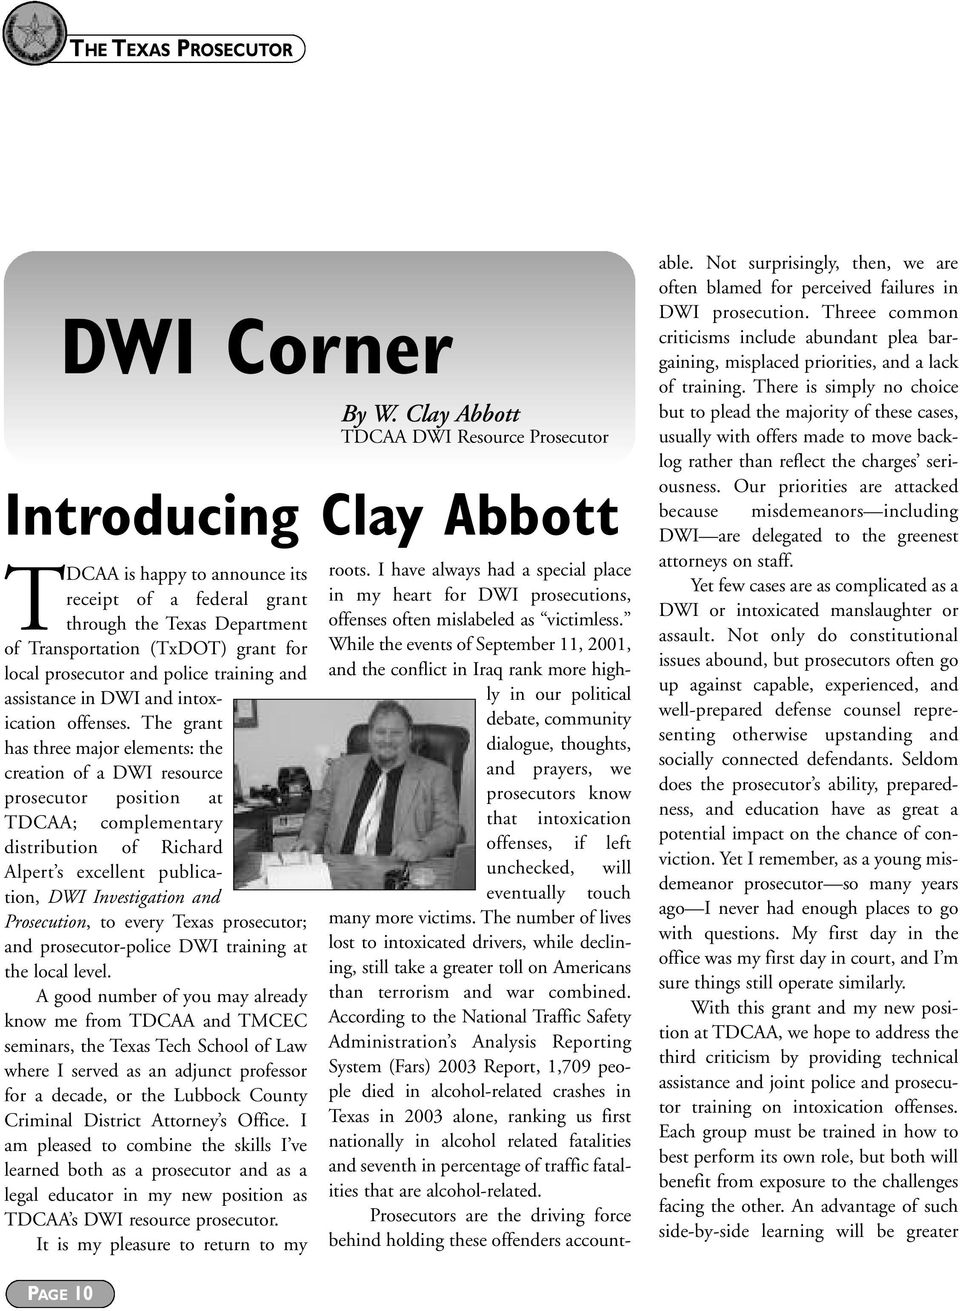 The grant has three major elements: the creation of a DWI resource prosecutor position at TDCAA; complementary distribution of Richard Alpert s excellent publication, DWI Investigation and